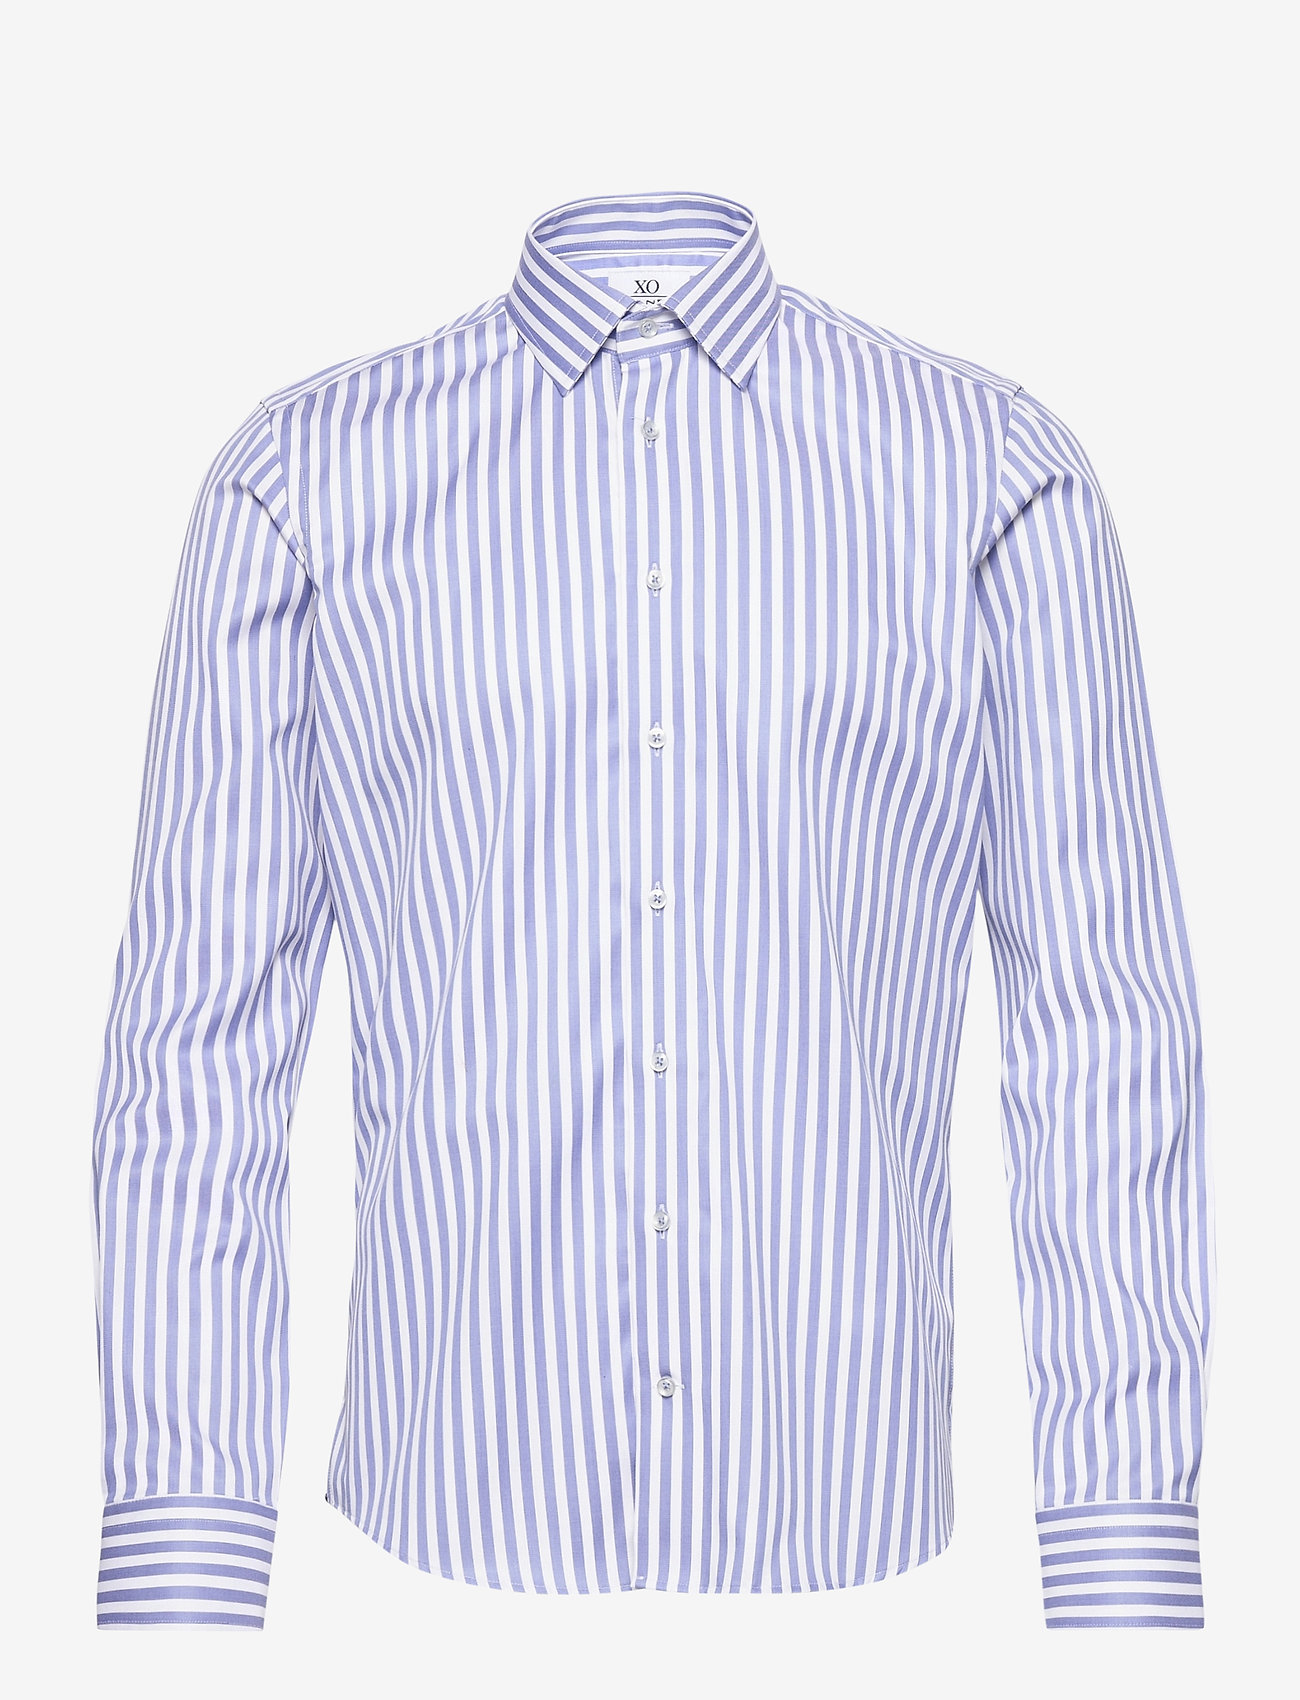 XO Shirtmaker by Sand Copenhagen - 8734 - Jake SC - business skjortor - blue - 0